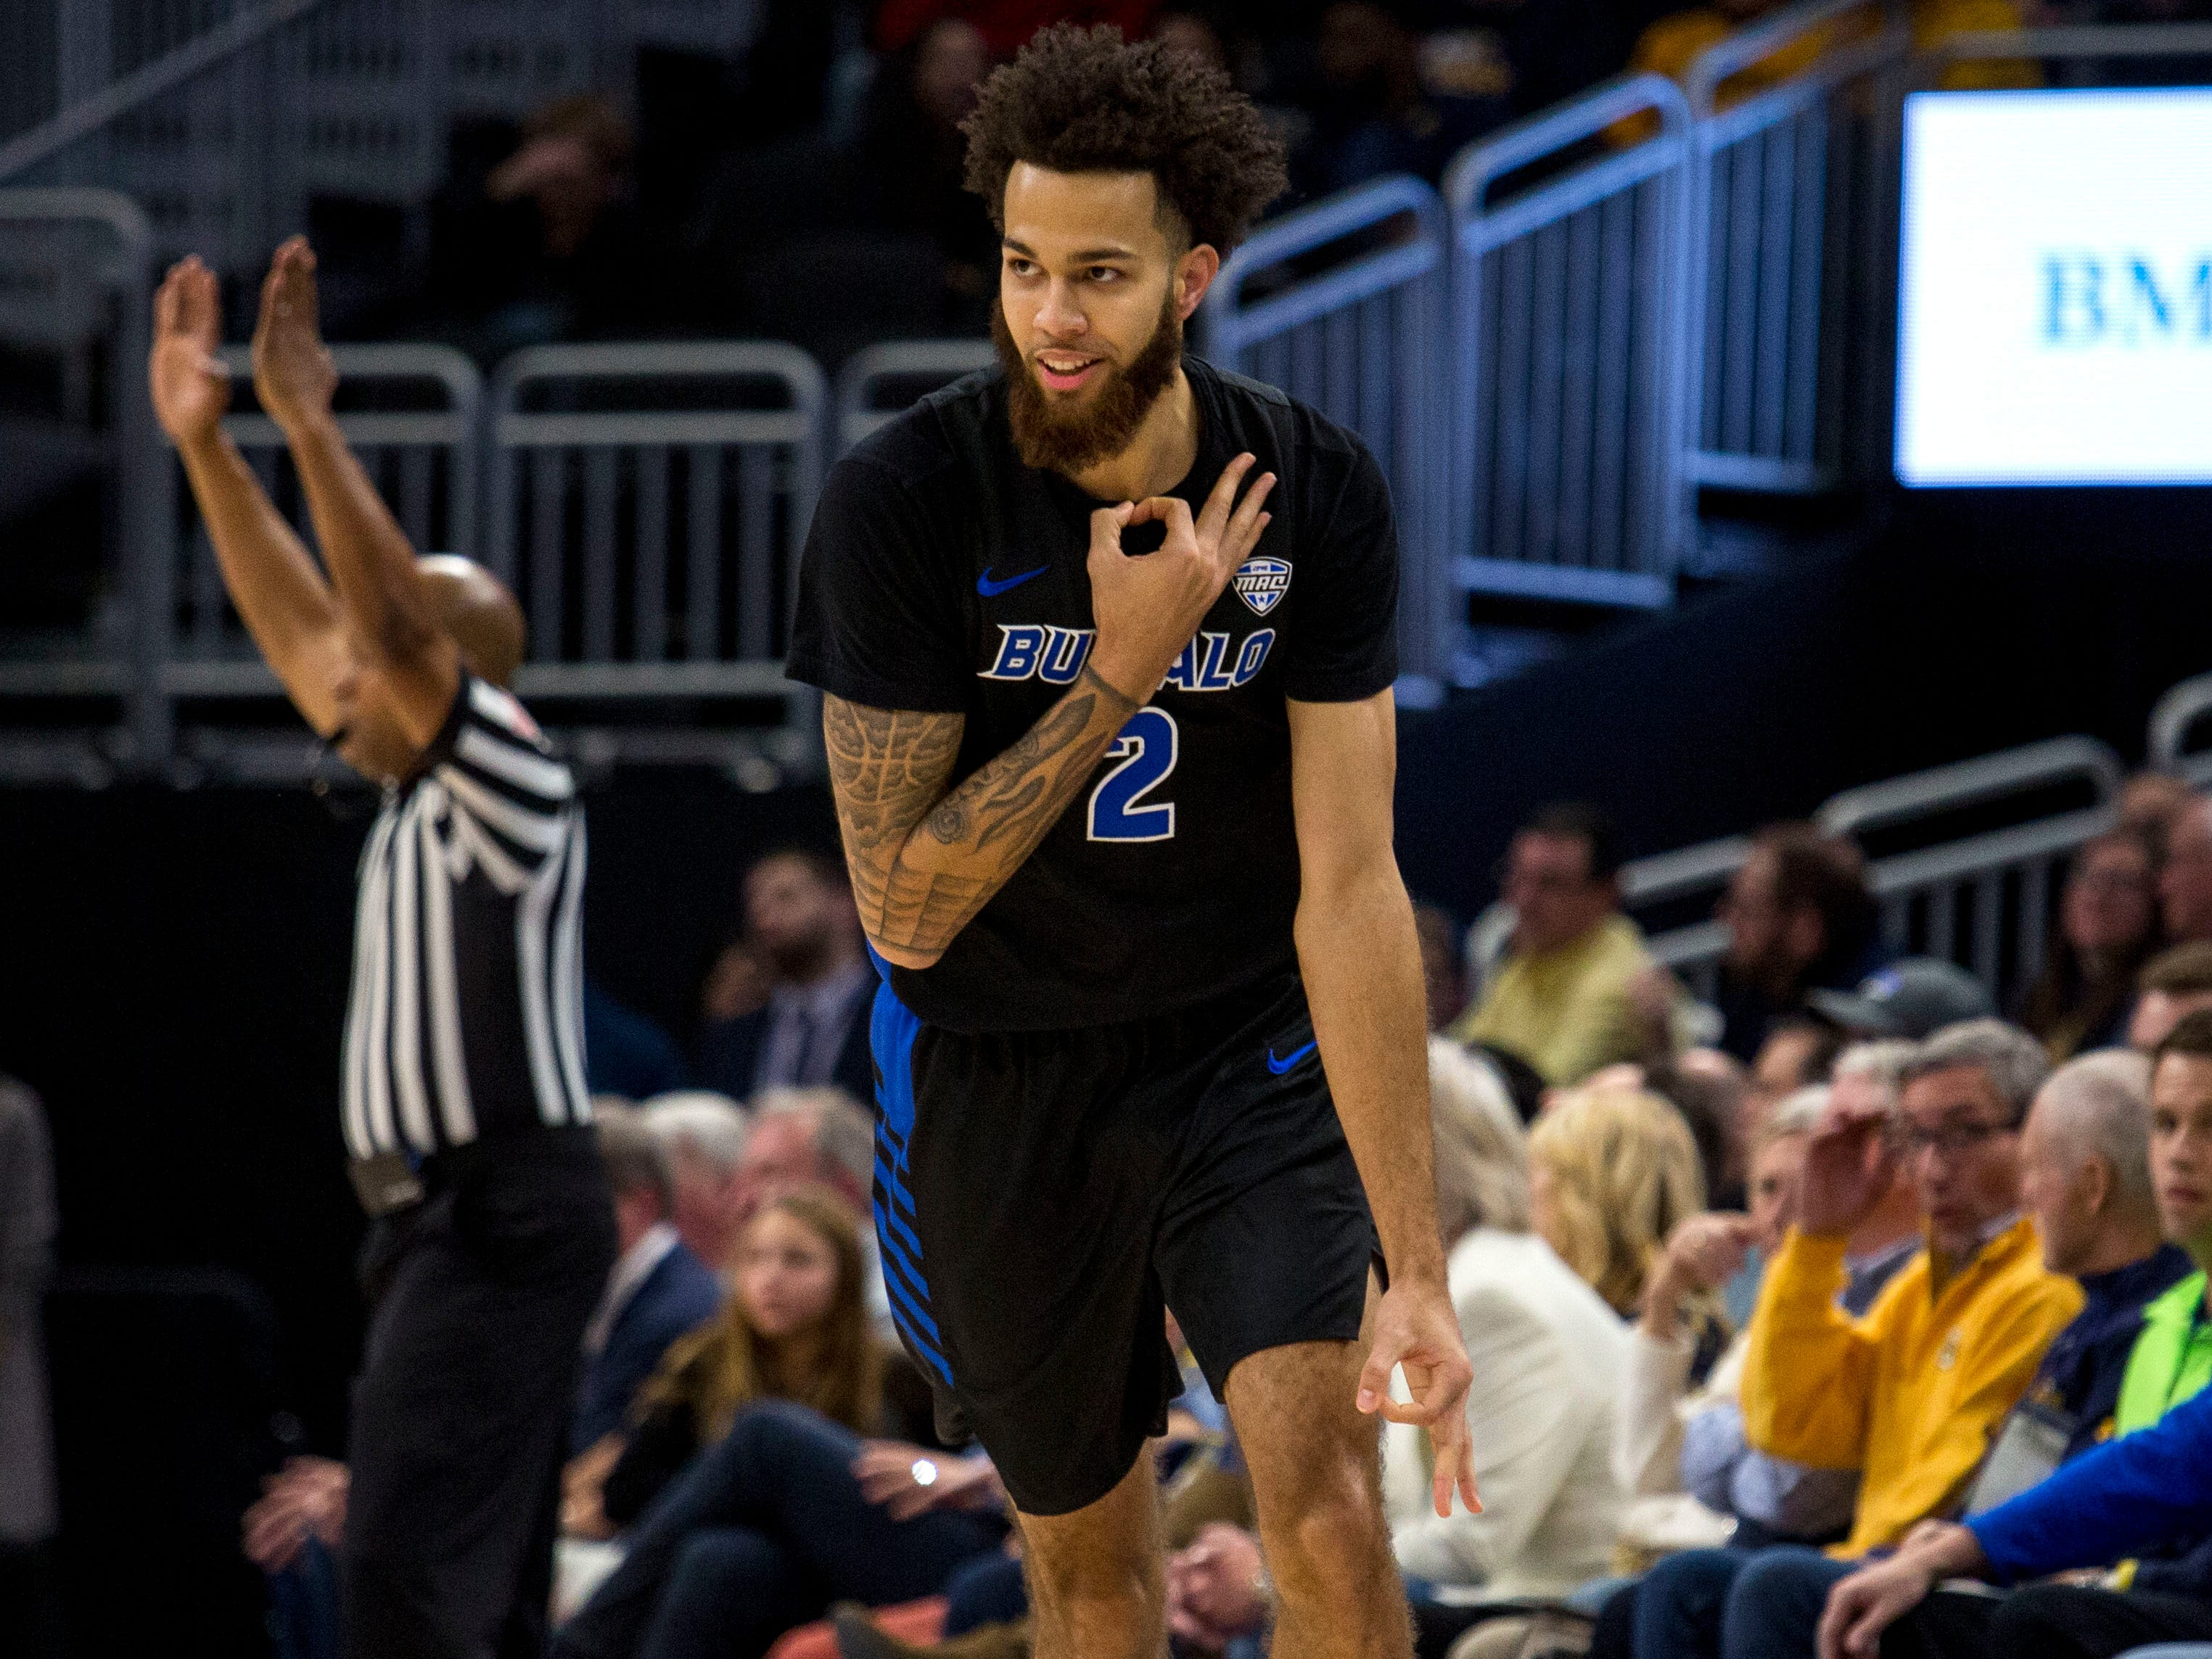 Buffalo guard Jeremy Harris gestures after making a three-pointer basket against Marquette during the first half Friday.